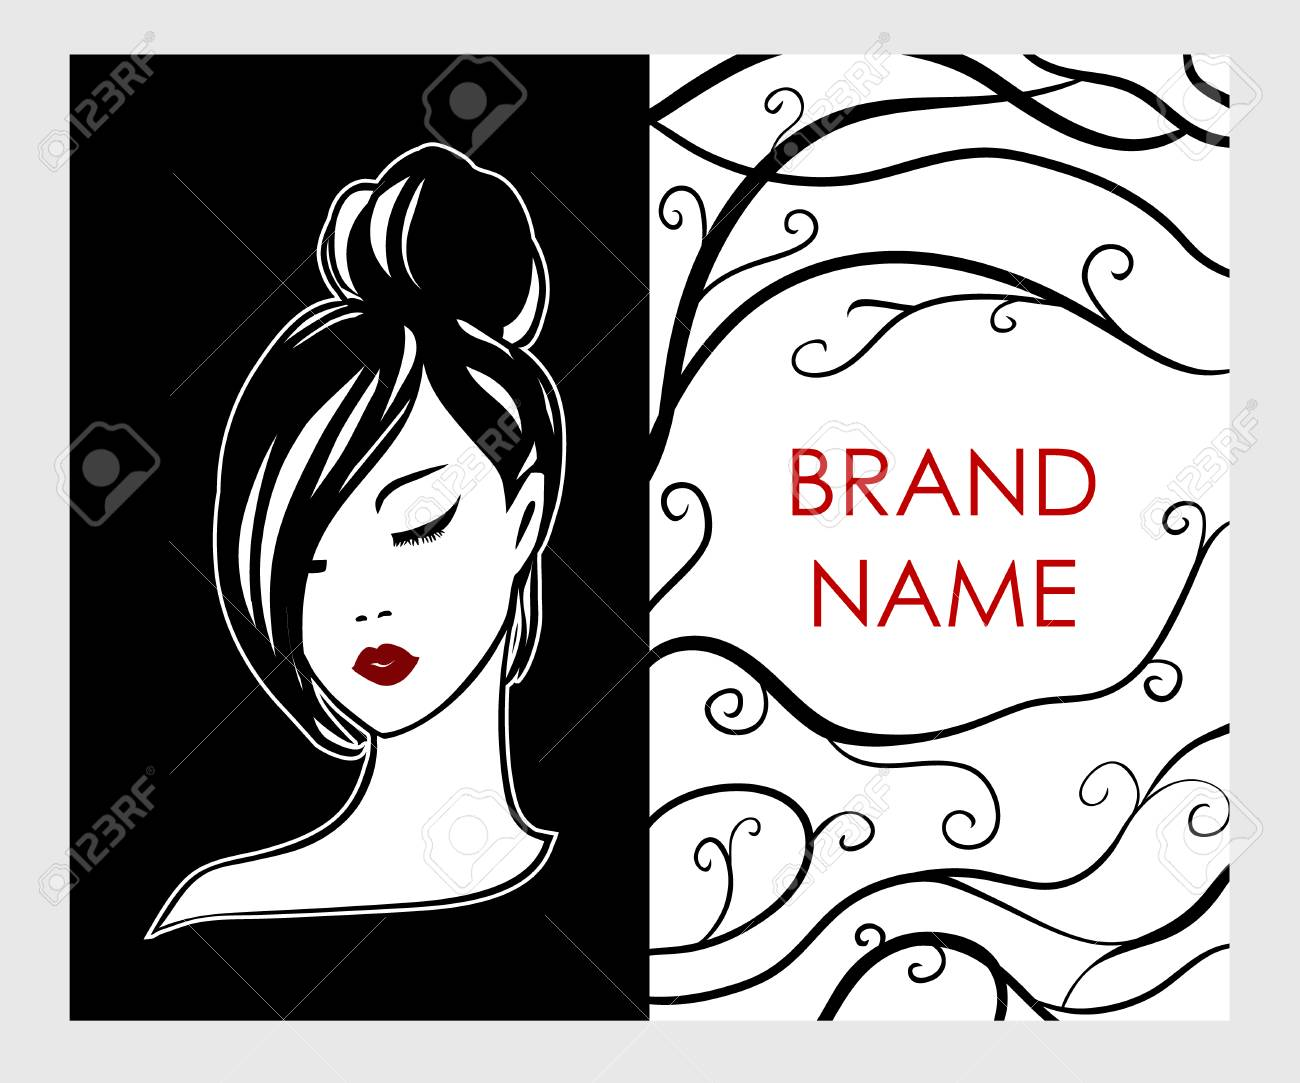 Business card, flyer with logo emblem of girl in black and white style - fashionable stylish design concept. Red lips on a white face - print vector fashion template for beauty salons and hairdressing - 101107796